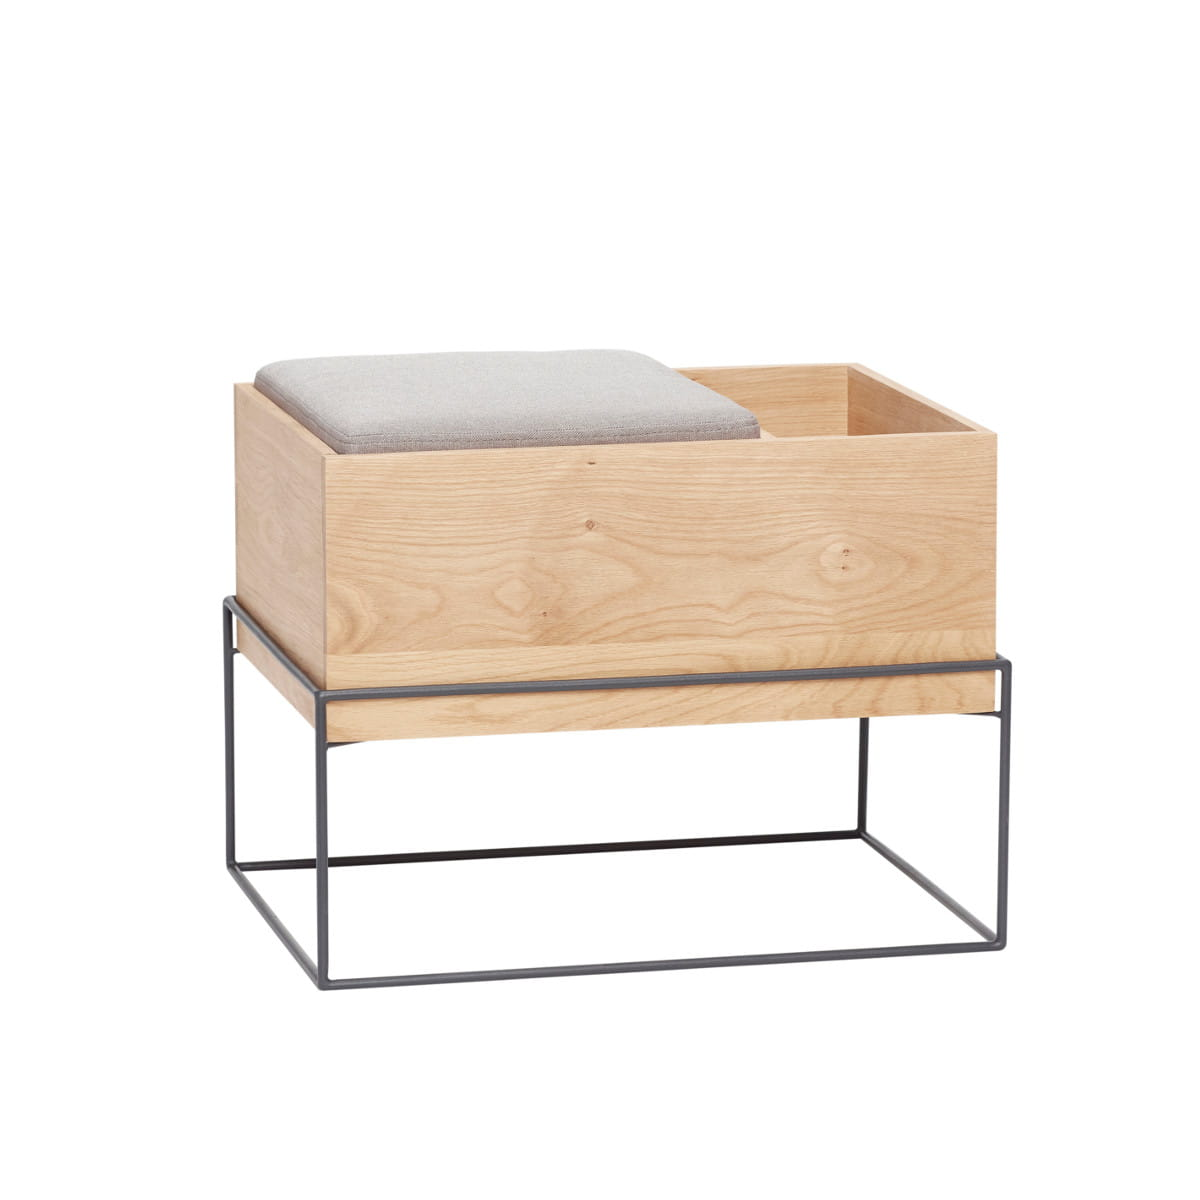 Bench With Cushionstorage Frame Hübsch Nordic Decoration Home